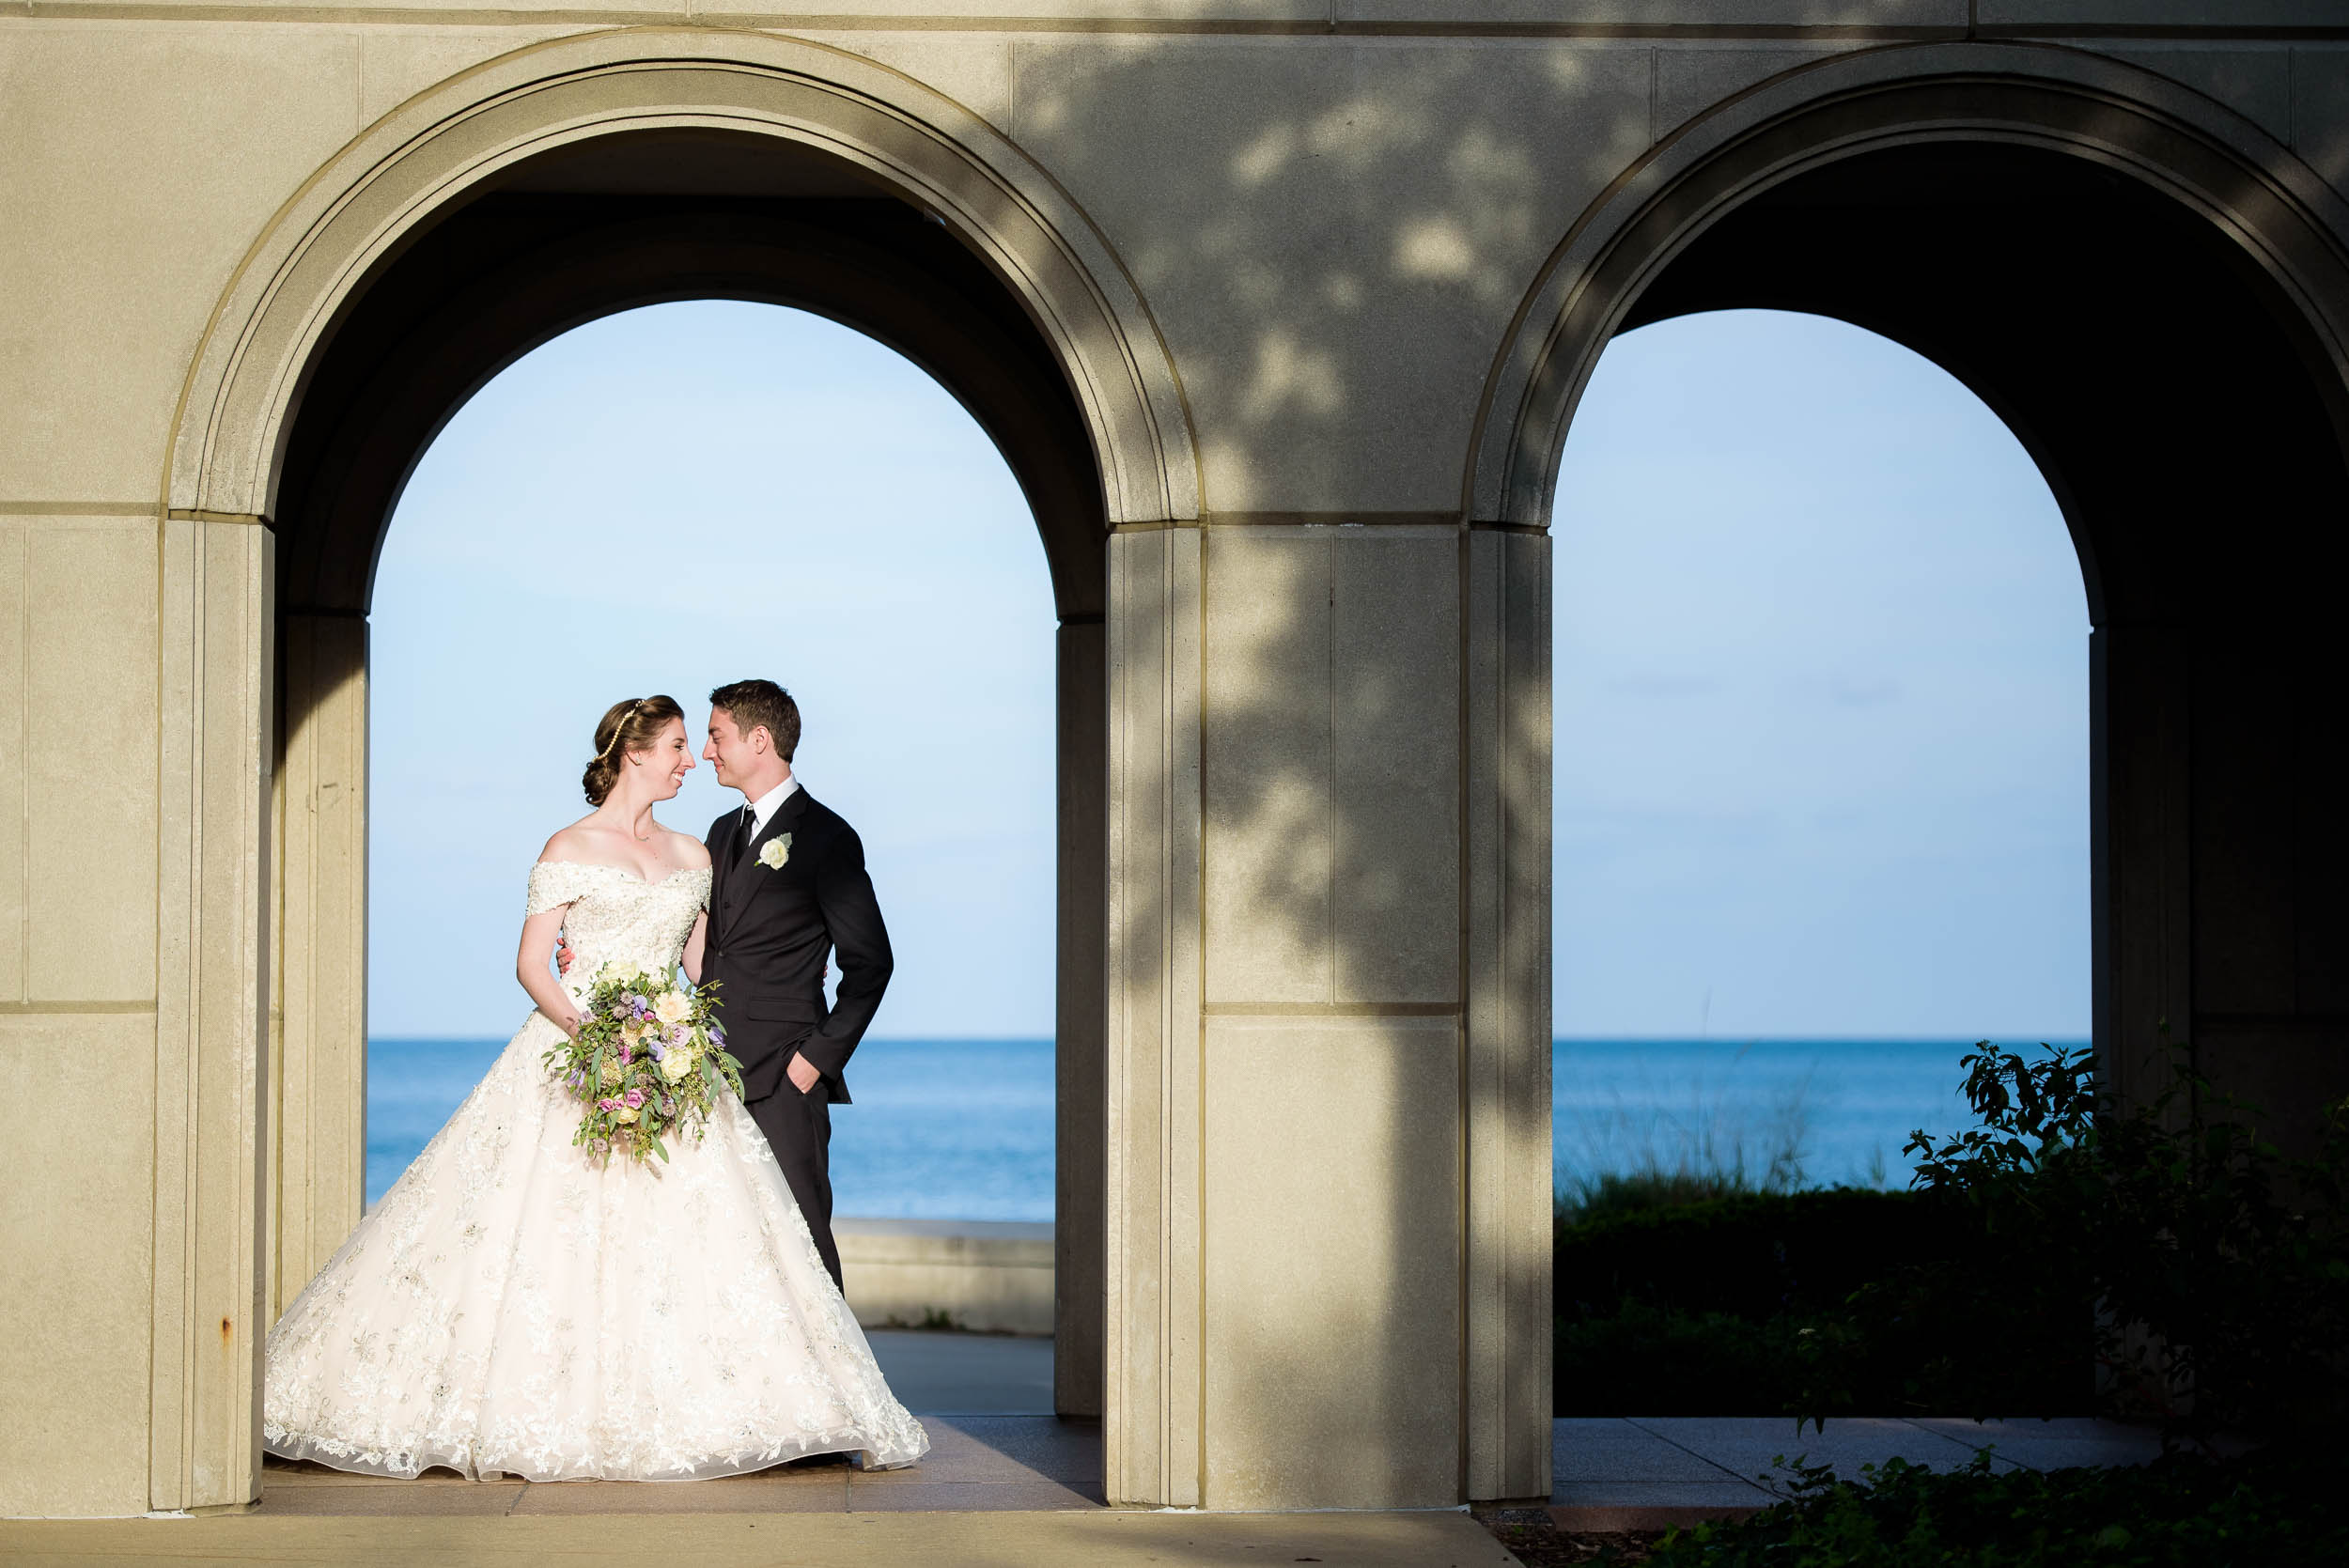 Wedding day portrait of the bride and groom on Loyola's Campus.